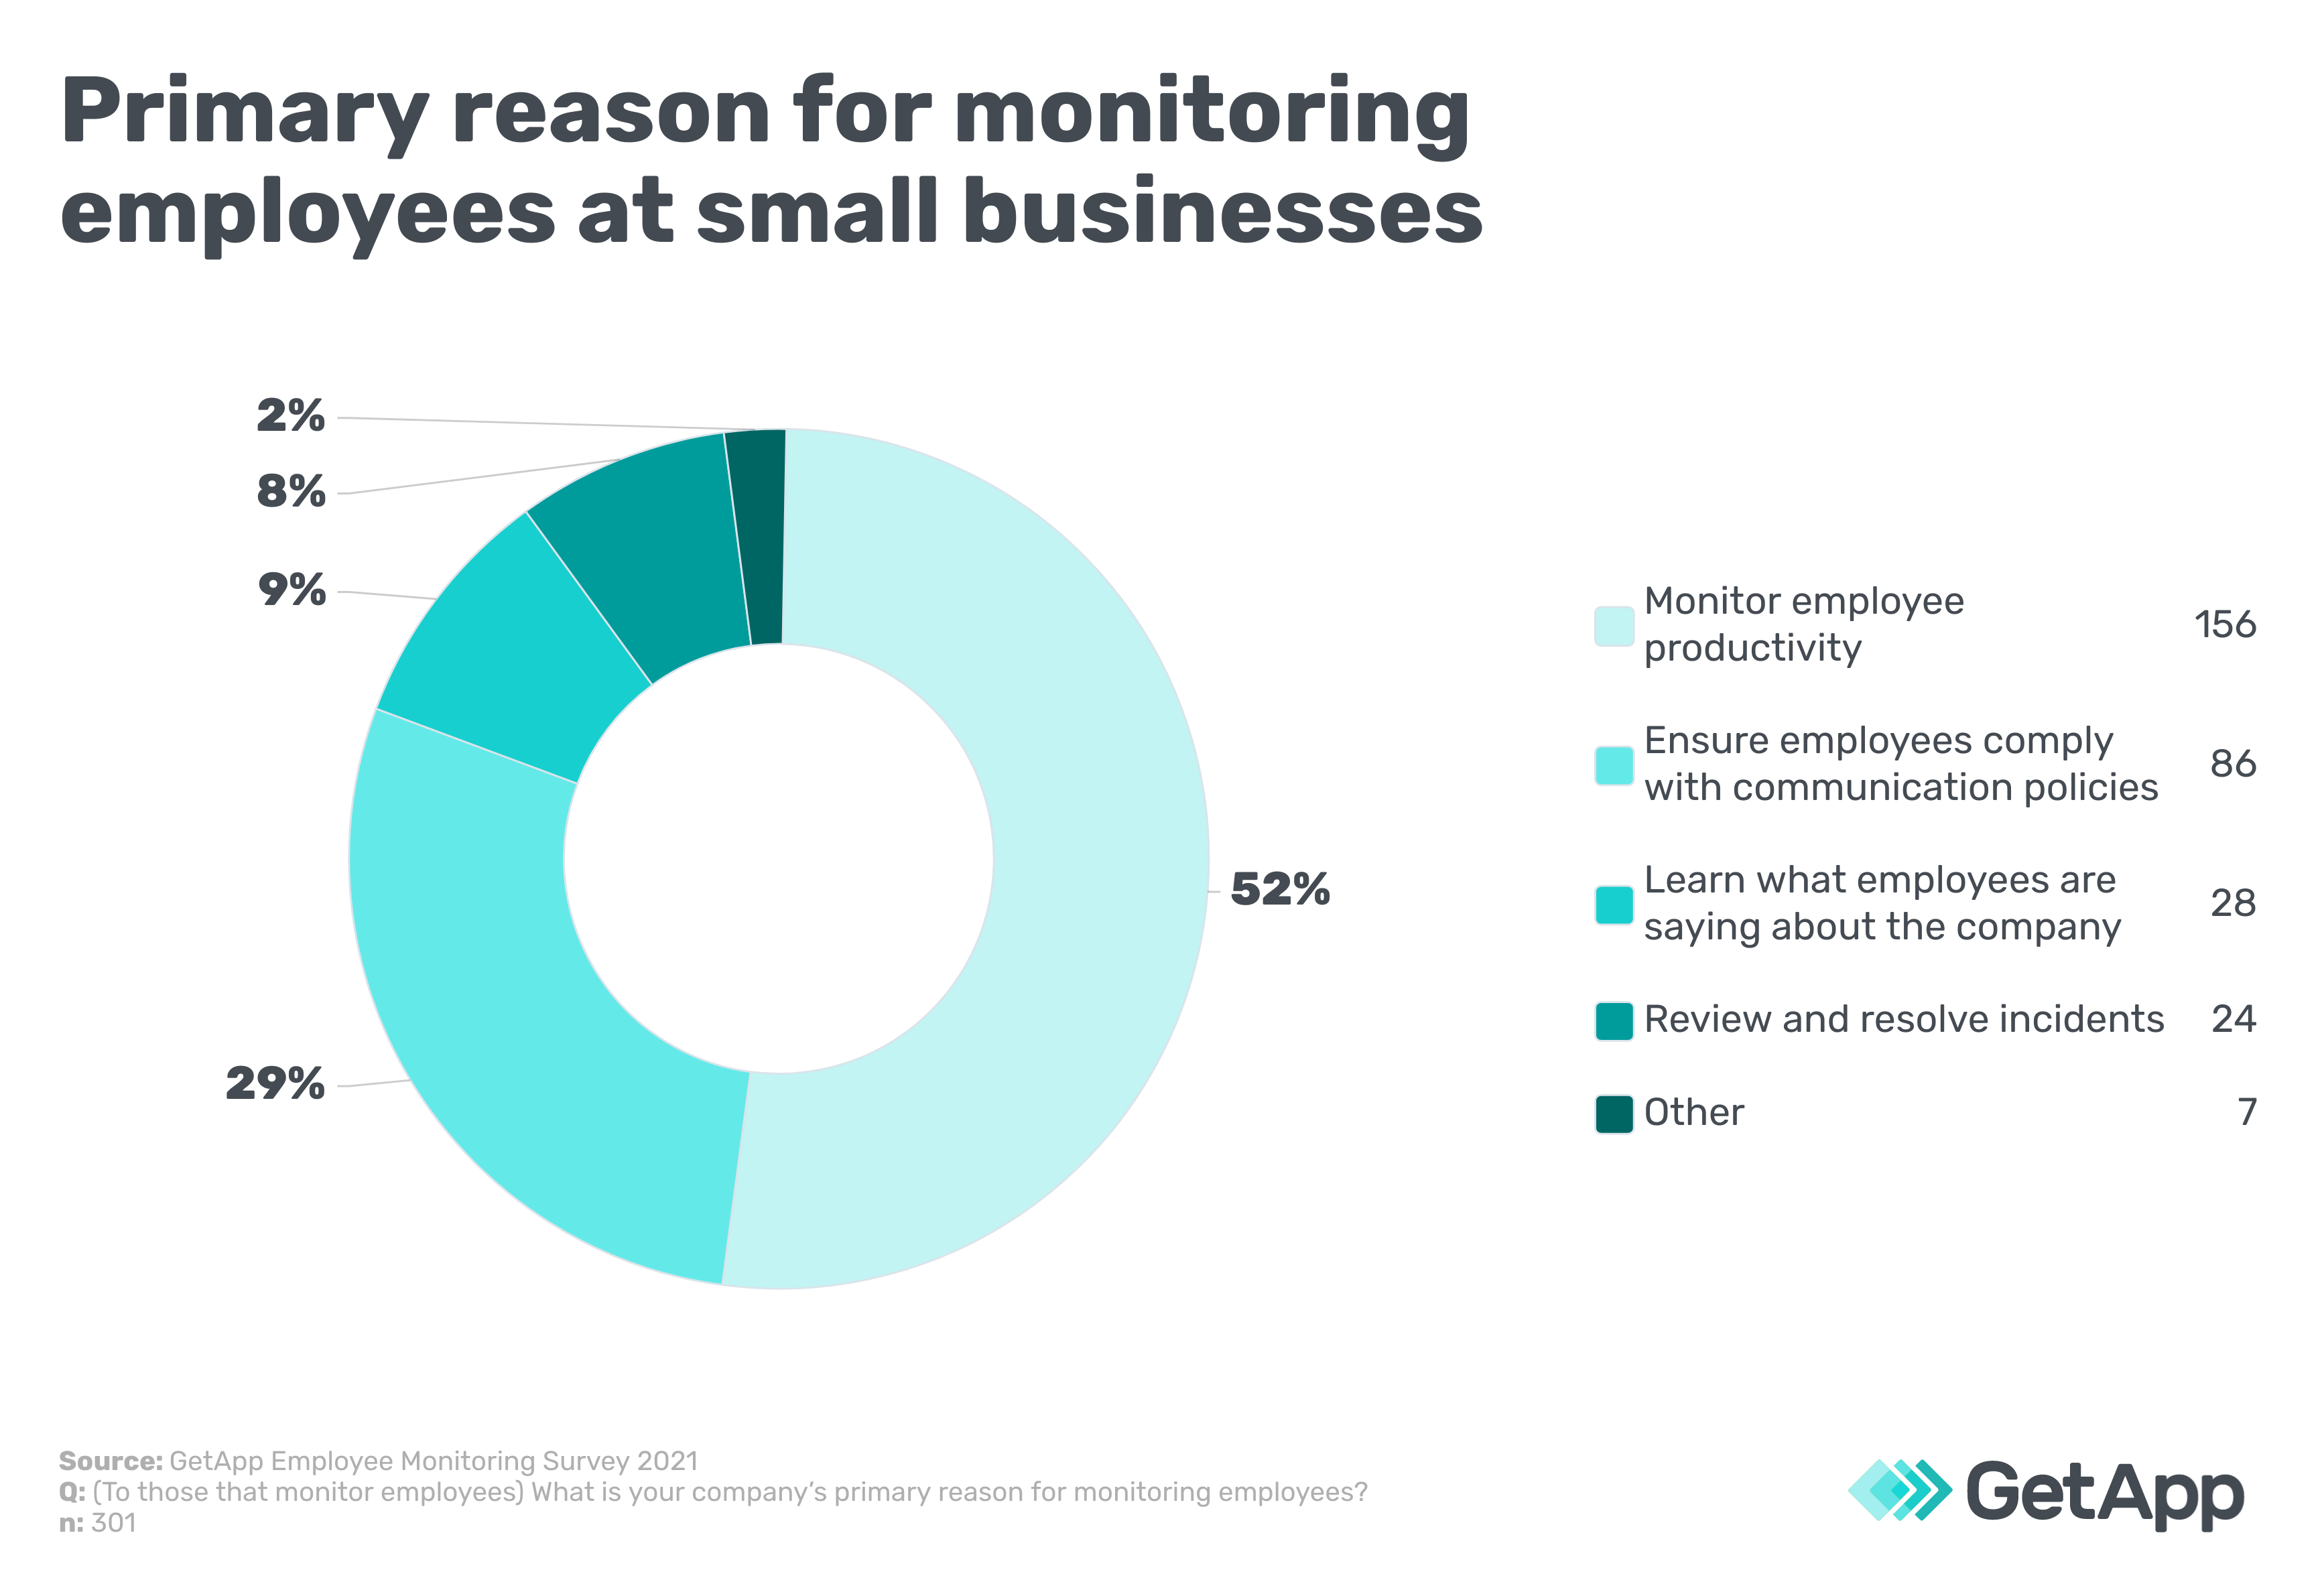 Primary reason for monitoring employees at small businesses